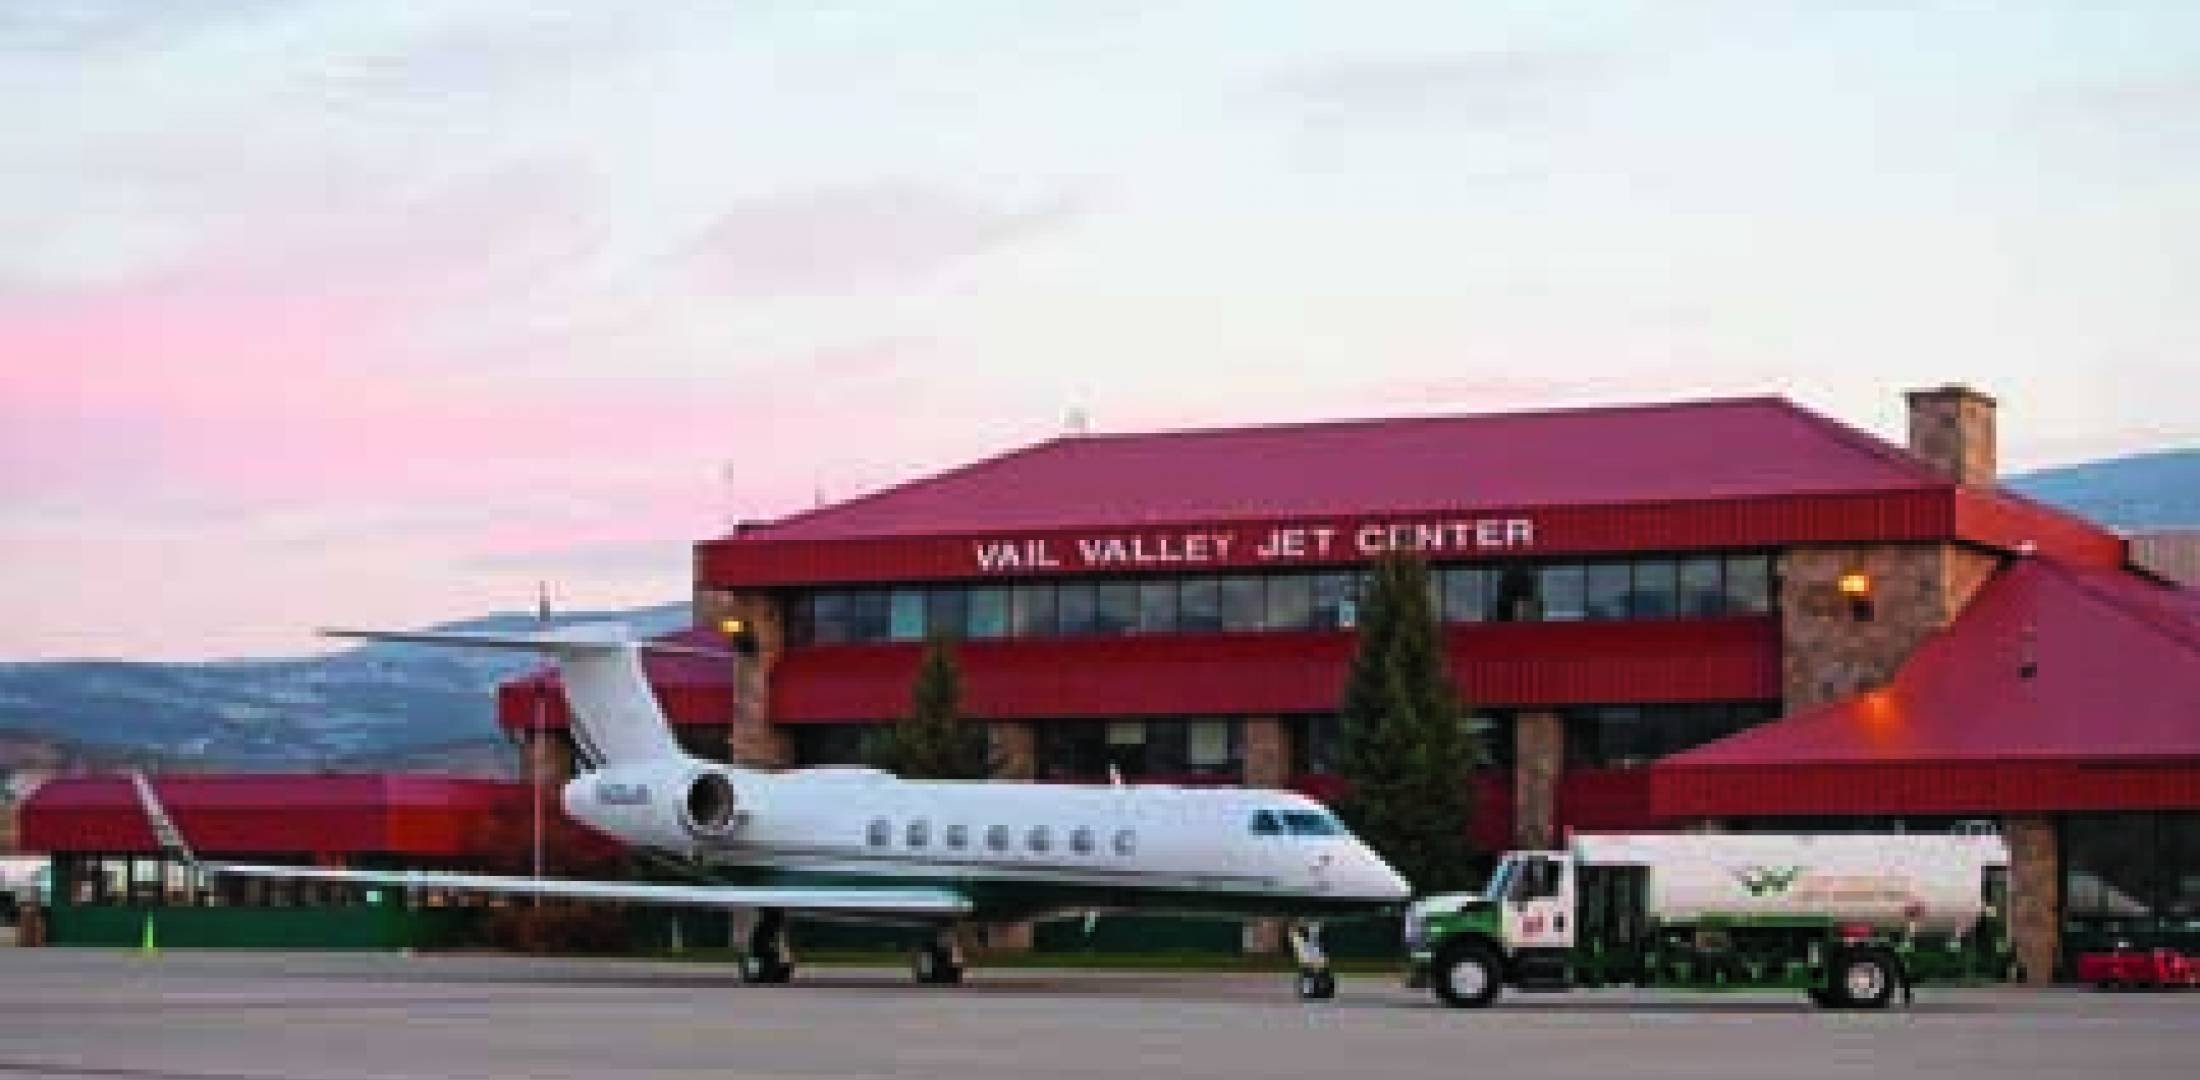 The Vail Valley Jet Center's business heats up as the snow falls.